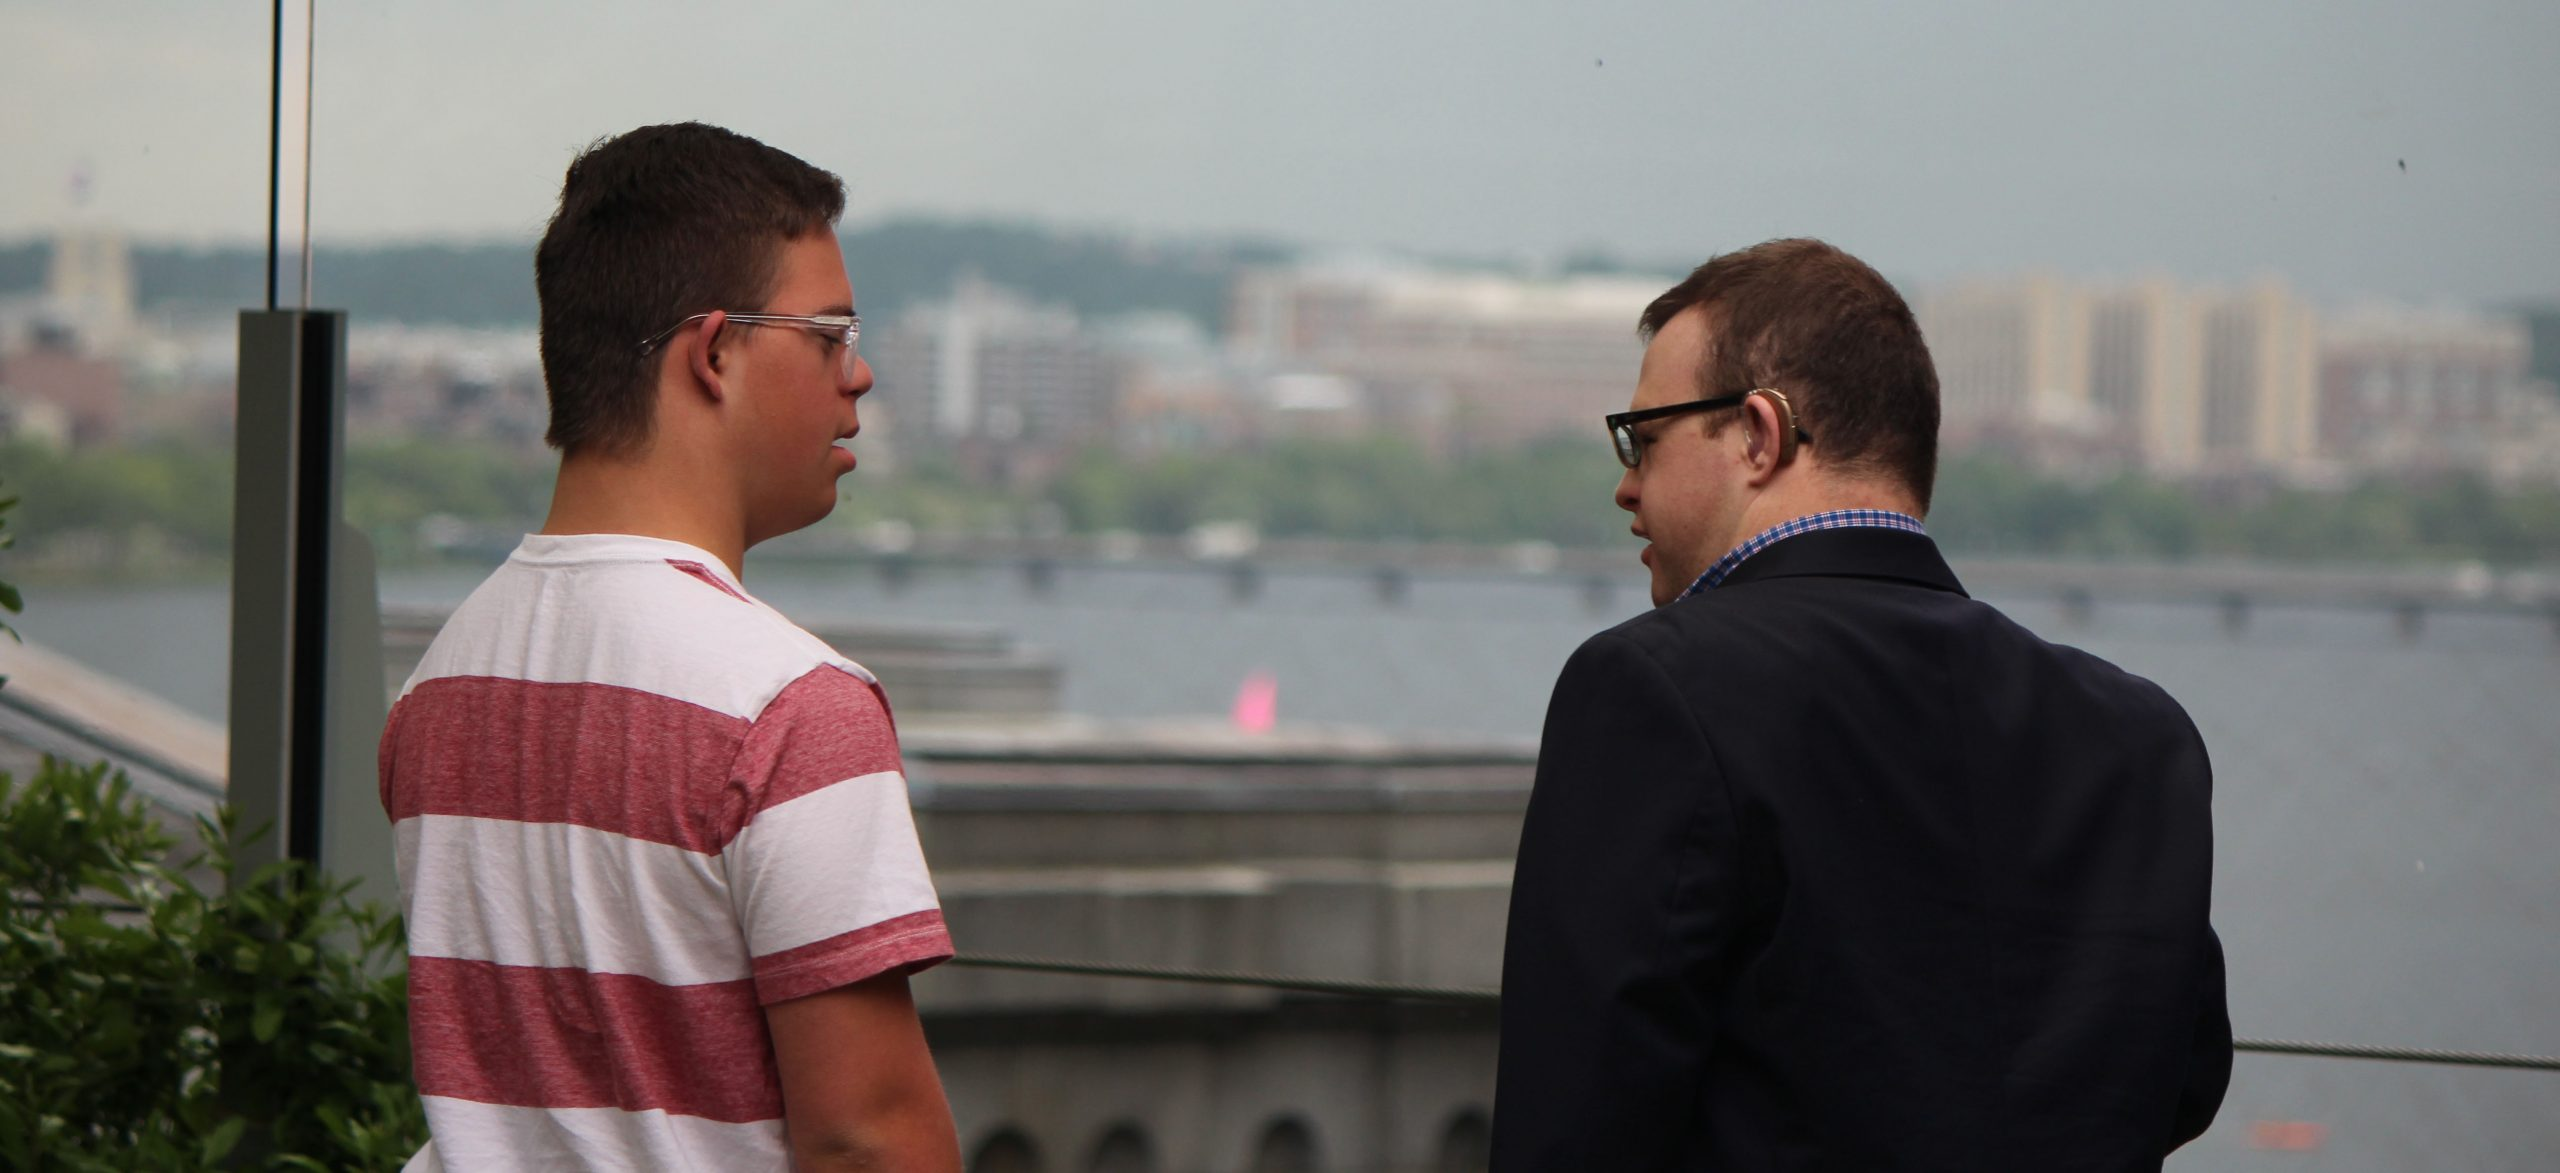 Two men stand with their backs to the camera. They are standing outside, in an area overlooking a river in the distance. They are turned to each other, as if they are speaking.